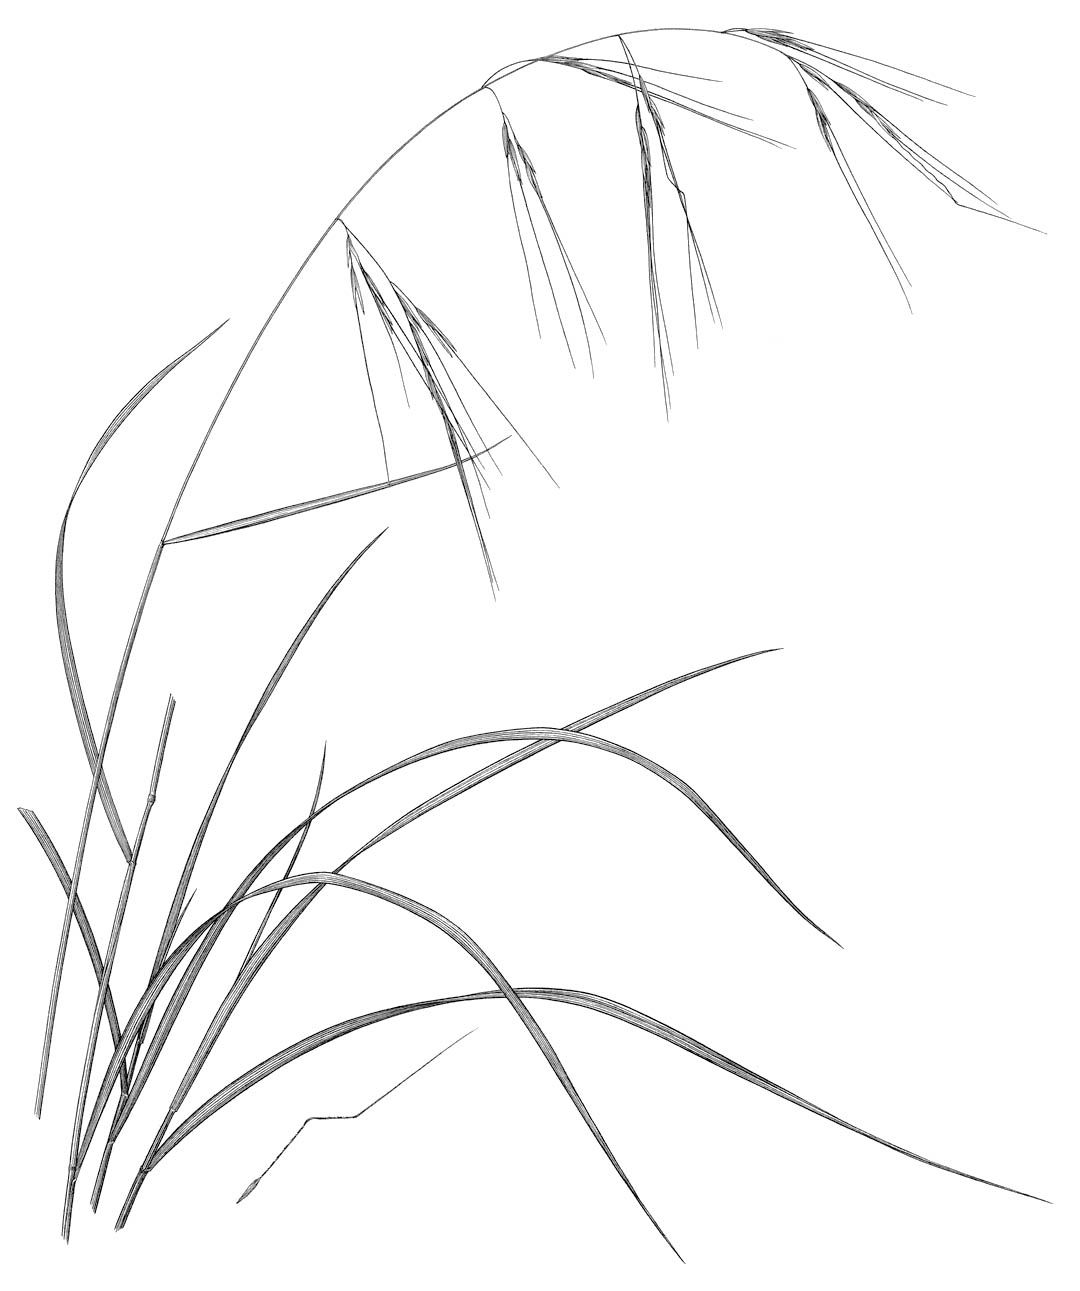 1080x1291 Gardening With California's Monocots Grasses Grasses, Tattoo